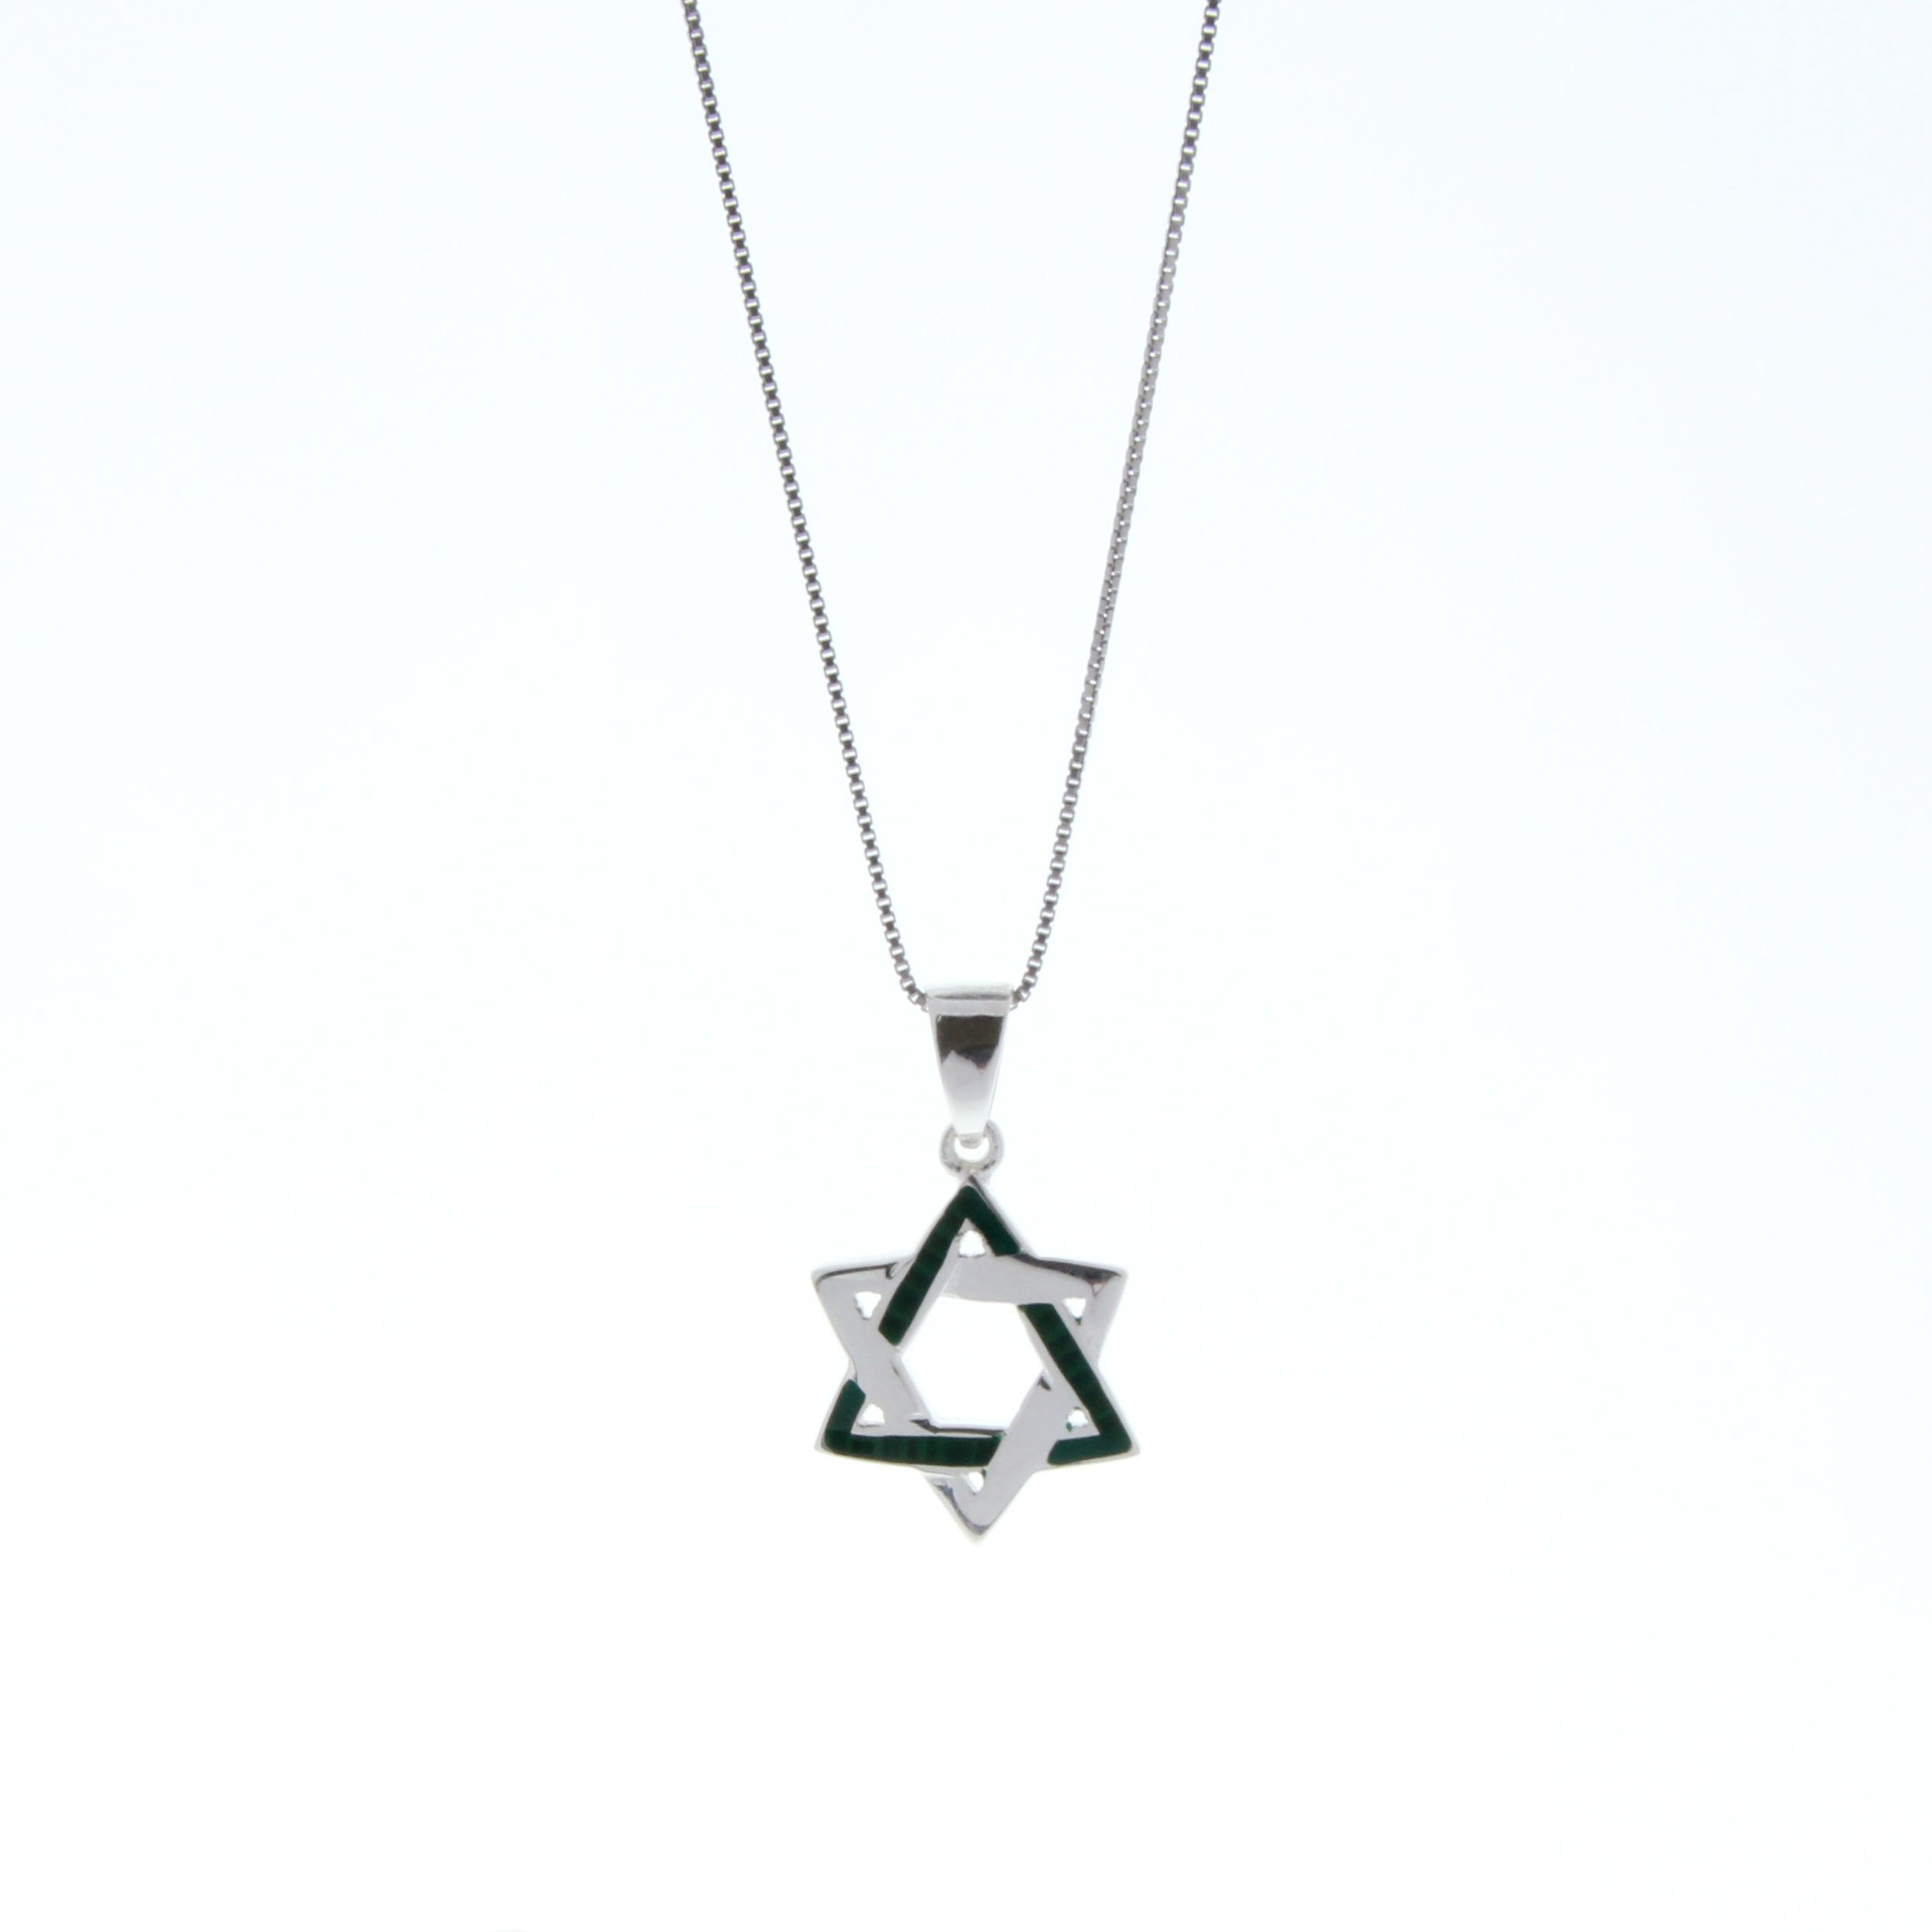 Handcrafted 925 sterling silver star of david pendant necklace a handcrafted 925 sterling silver star of david pendant necklace a delightful creation featuring a fine aloadofball Image collections